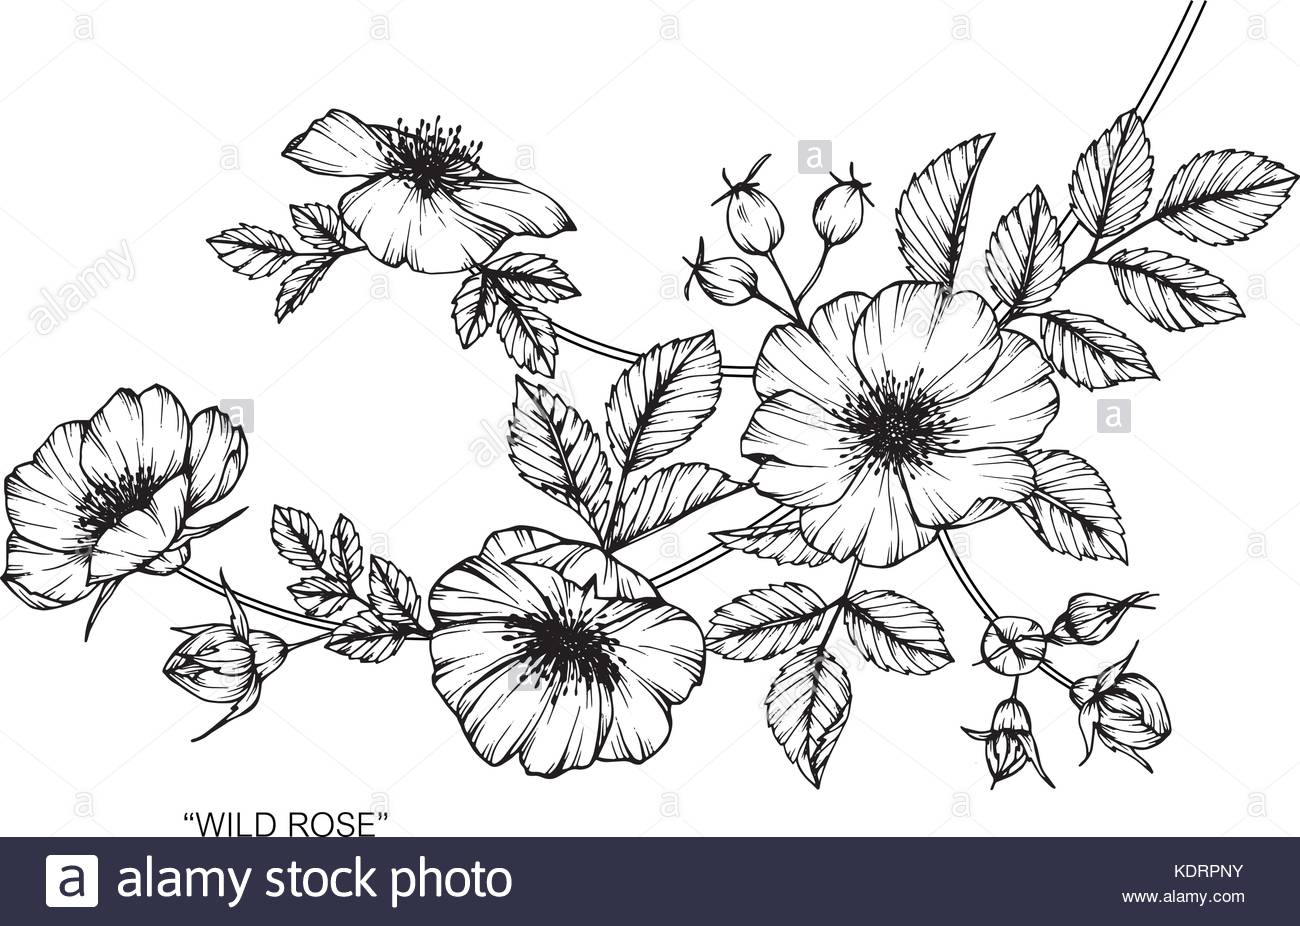 1300x926 Wild Roses Flower Drawing Illustration. Black And White With Line